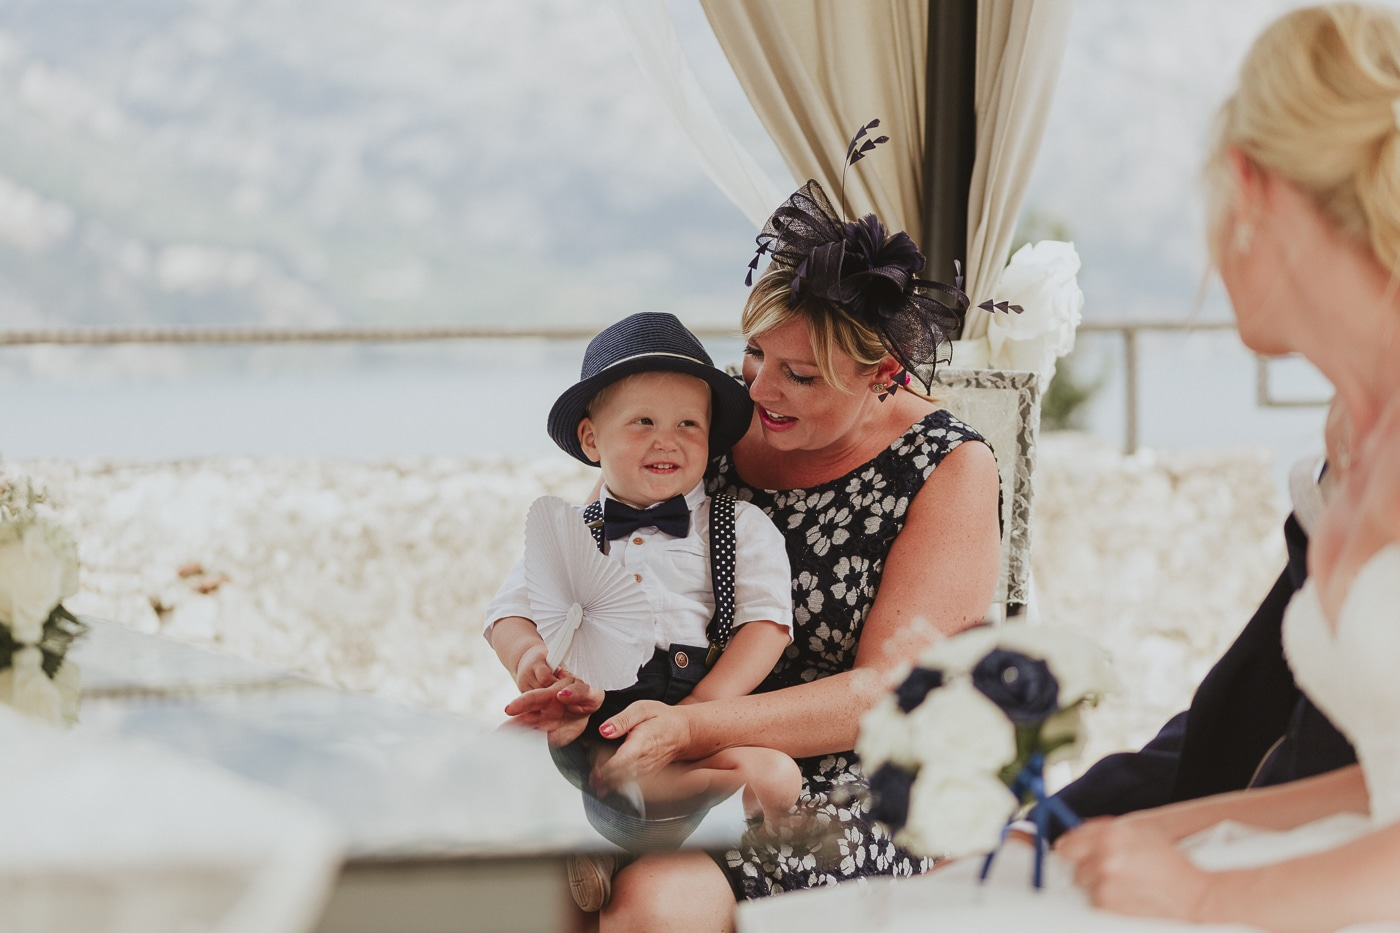 Small child with hat on sitting on lap of a lady in a flowery dress with a fascinator in hair